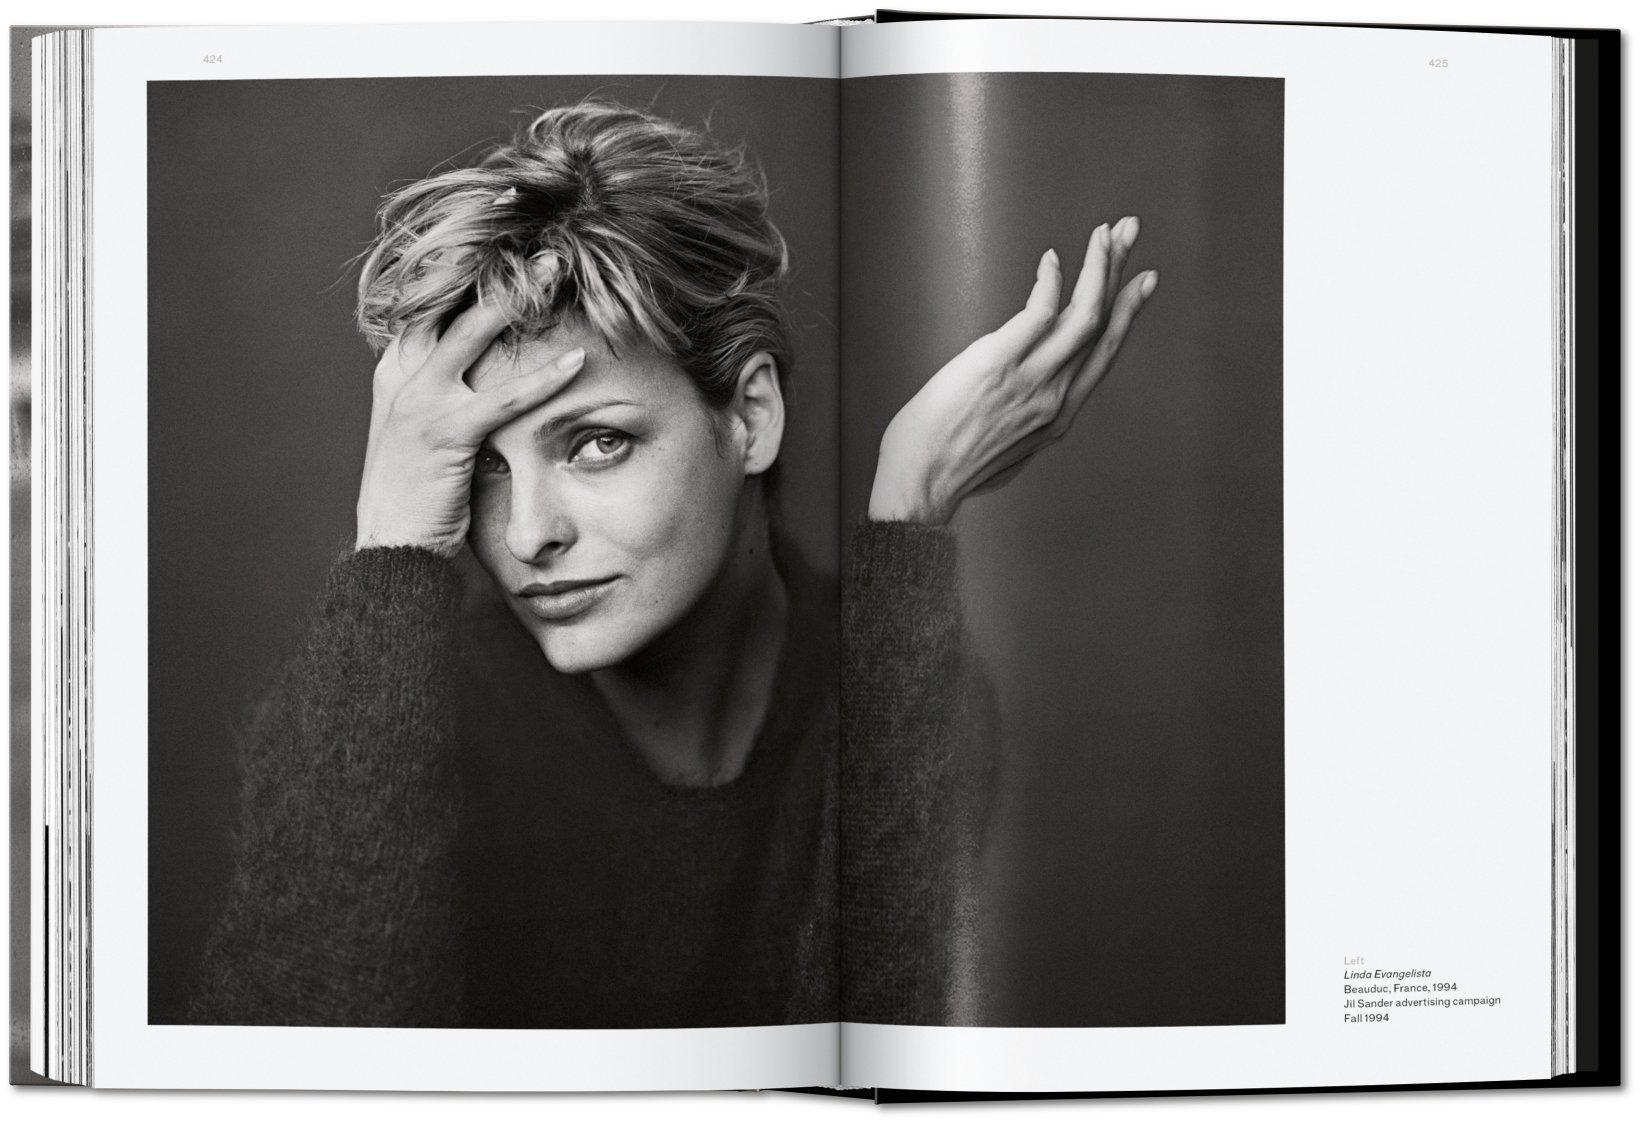 Buch, Peter Lindbergh on Fashion Photography - TASCHEN - Bild 7